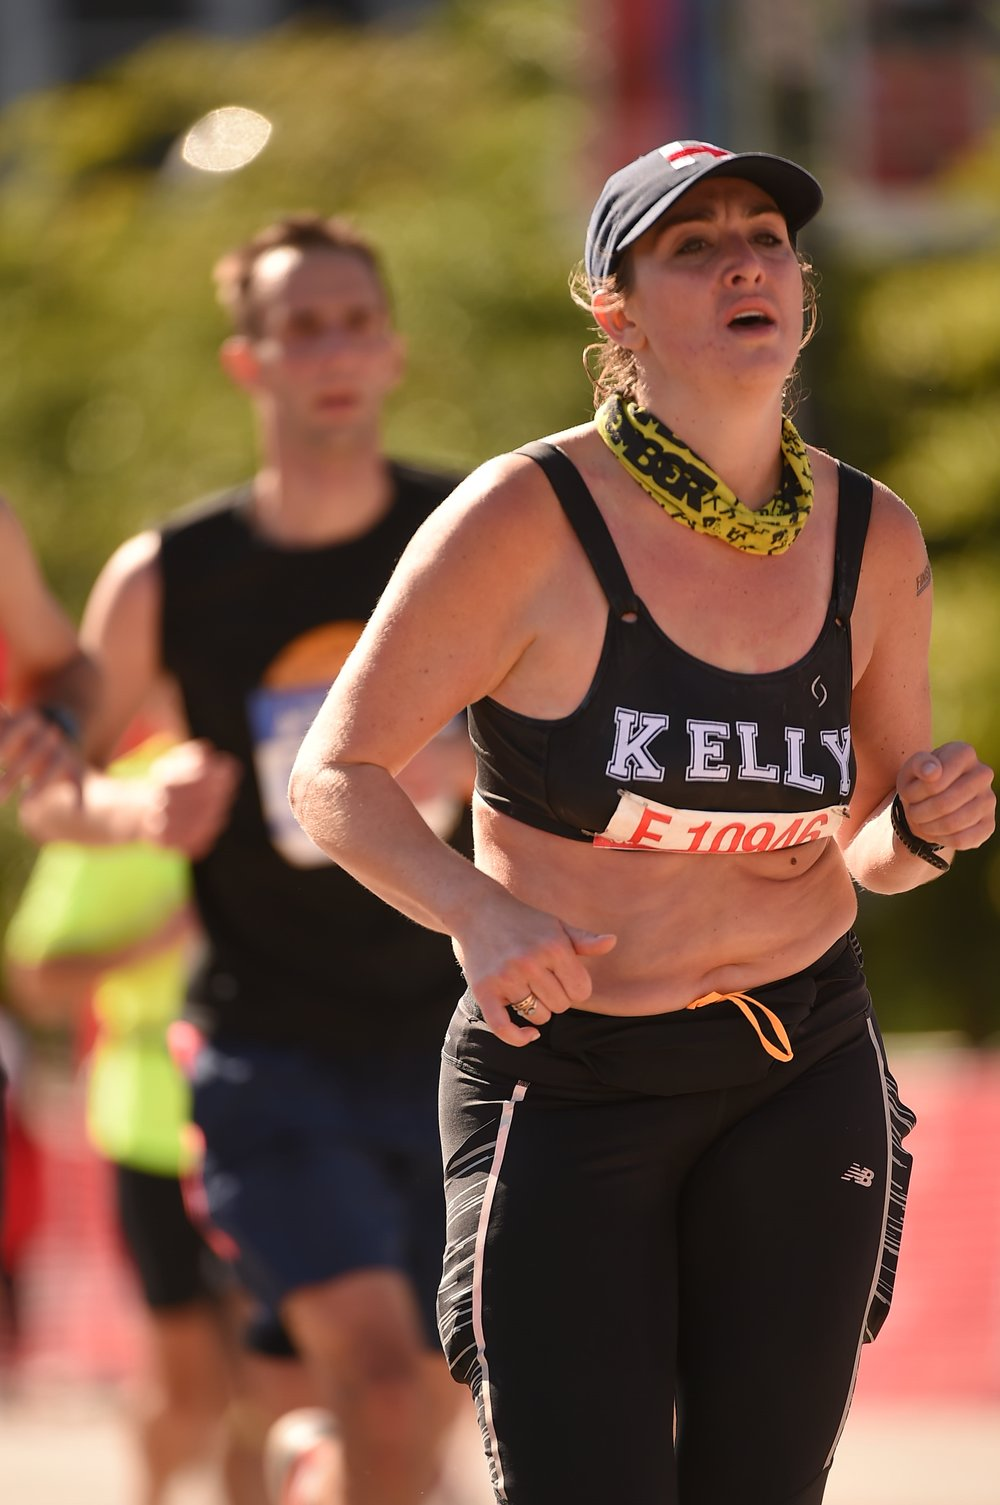 This is me, busting out a 7 minute 45 second mile for the final 1.2 miles of the Chicago Marathon where I finished in 3 hours and 41 minutes. I may not have a six pack, but I'm strong as f*ck. Stop cringing when you see your body. This picture makes me smile because it reminds me of how hard I worked. Proud is all I feel. And it took me years of hard work and positive self talk to get to this place.